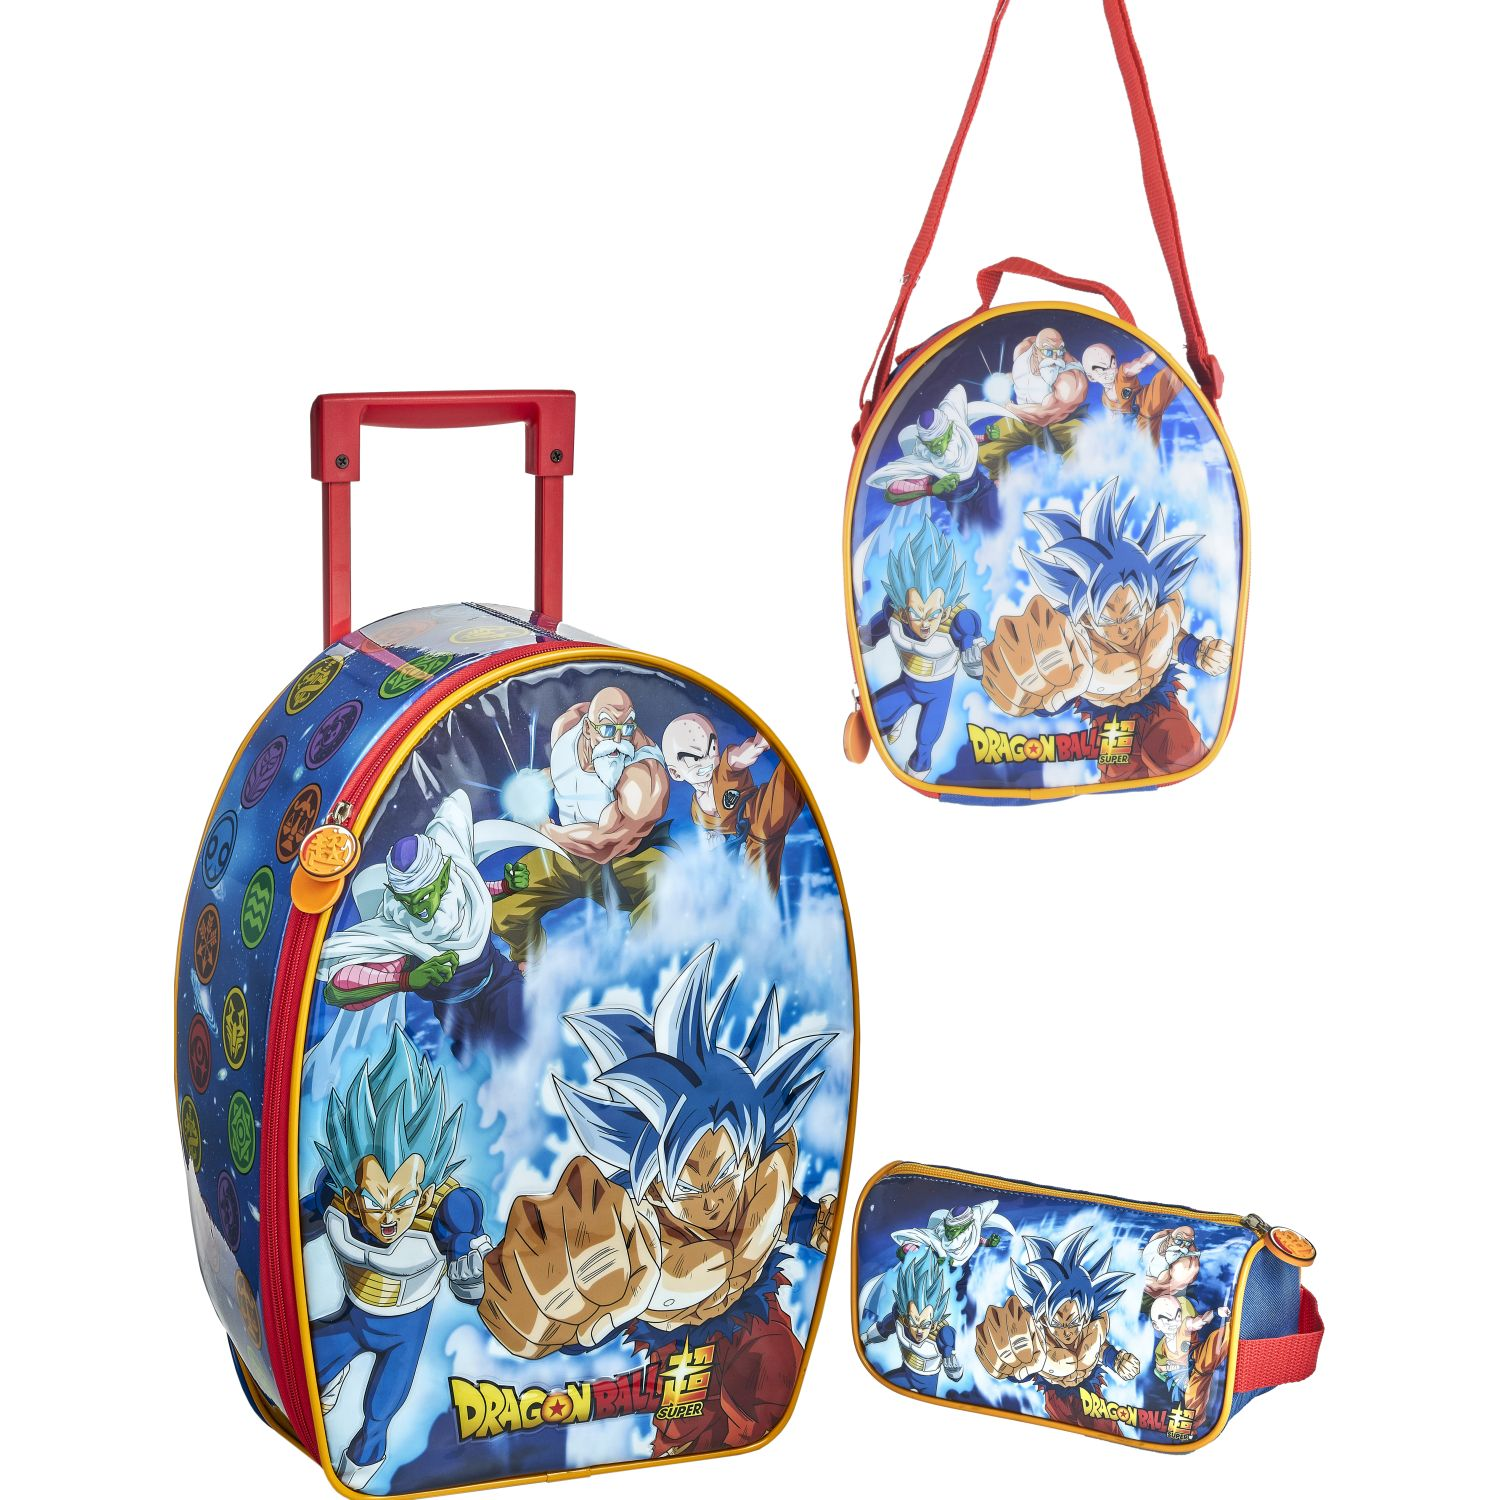 DRAGON BALL 20 SCOOL DRAGON BALL SET RANGER_A PVC Azul / naranja mochilas